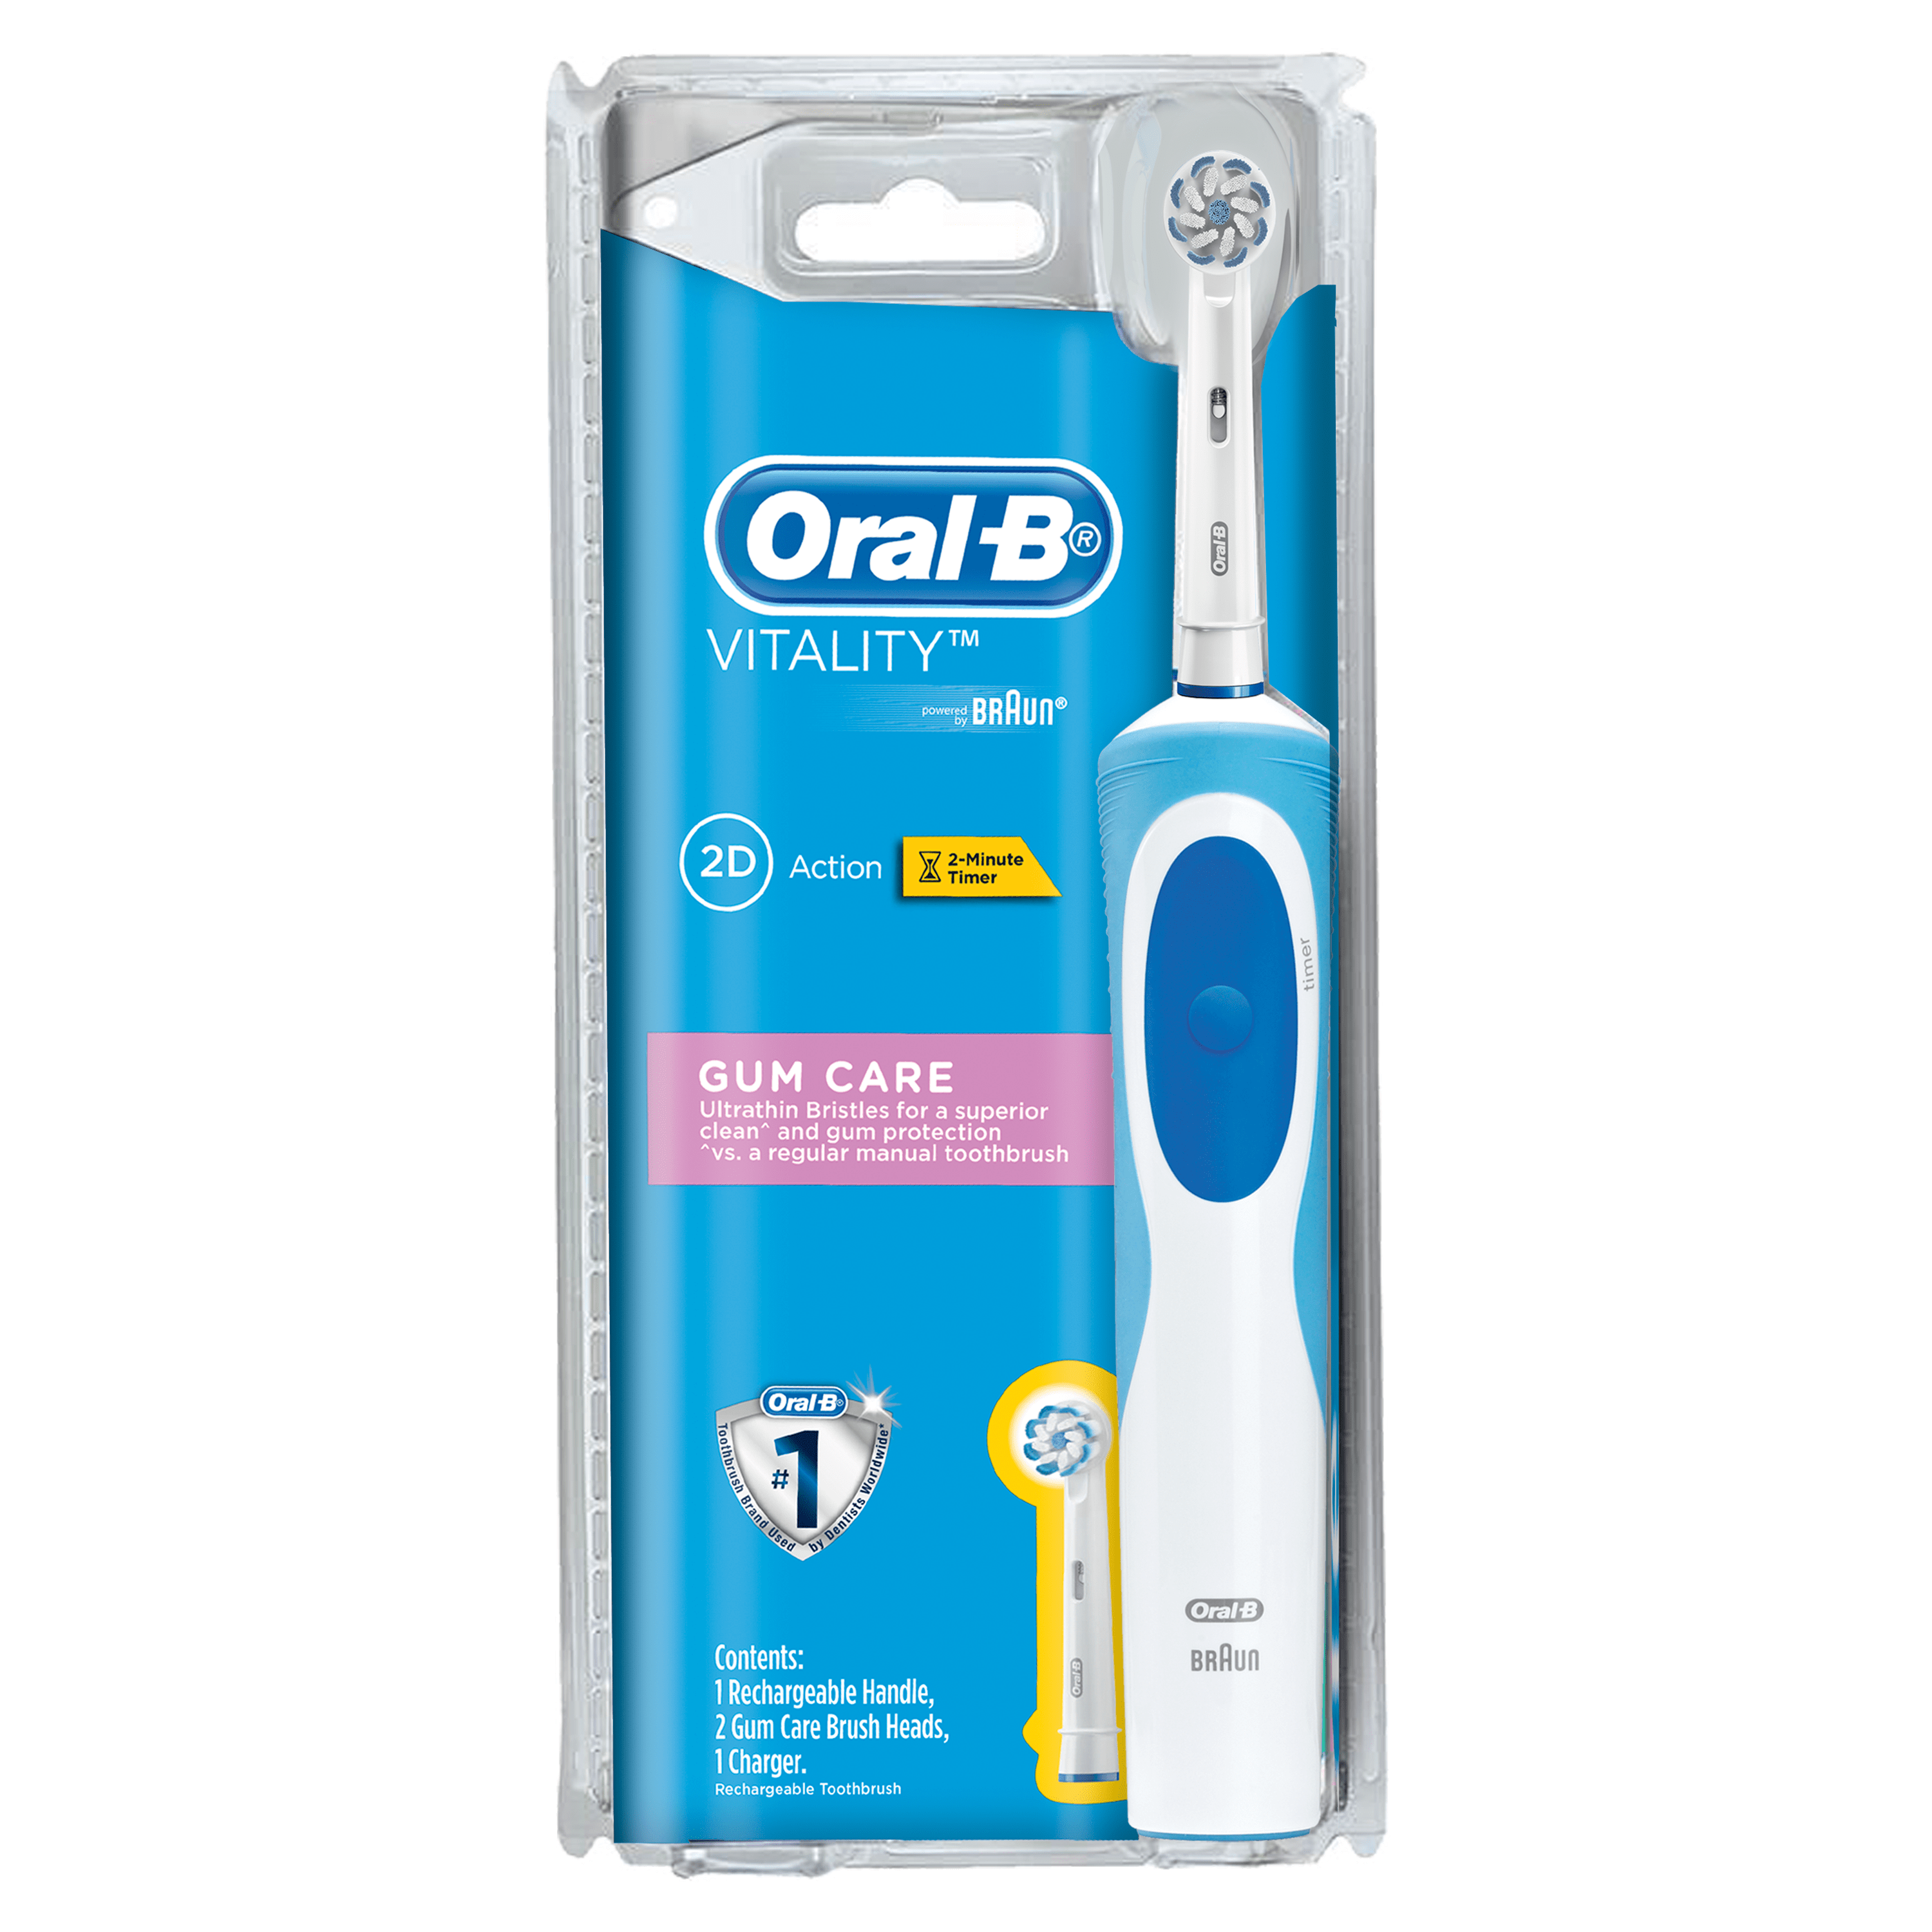 Oral-B Vitality Gum Care Electric Toothbrush